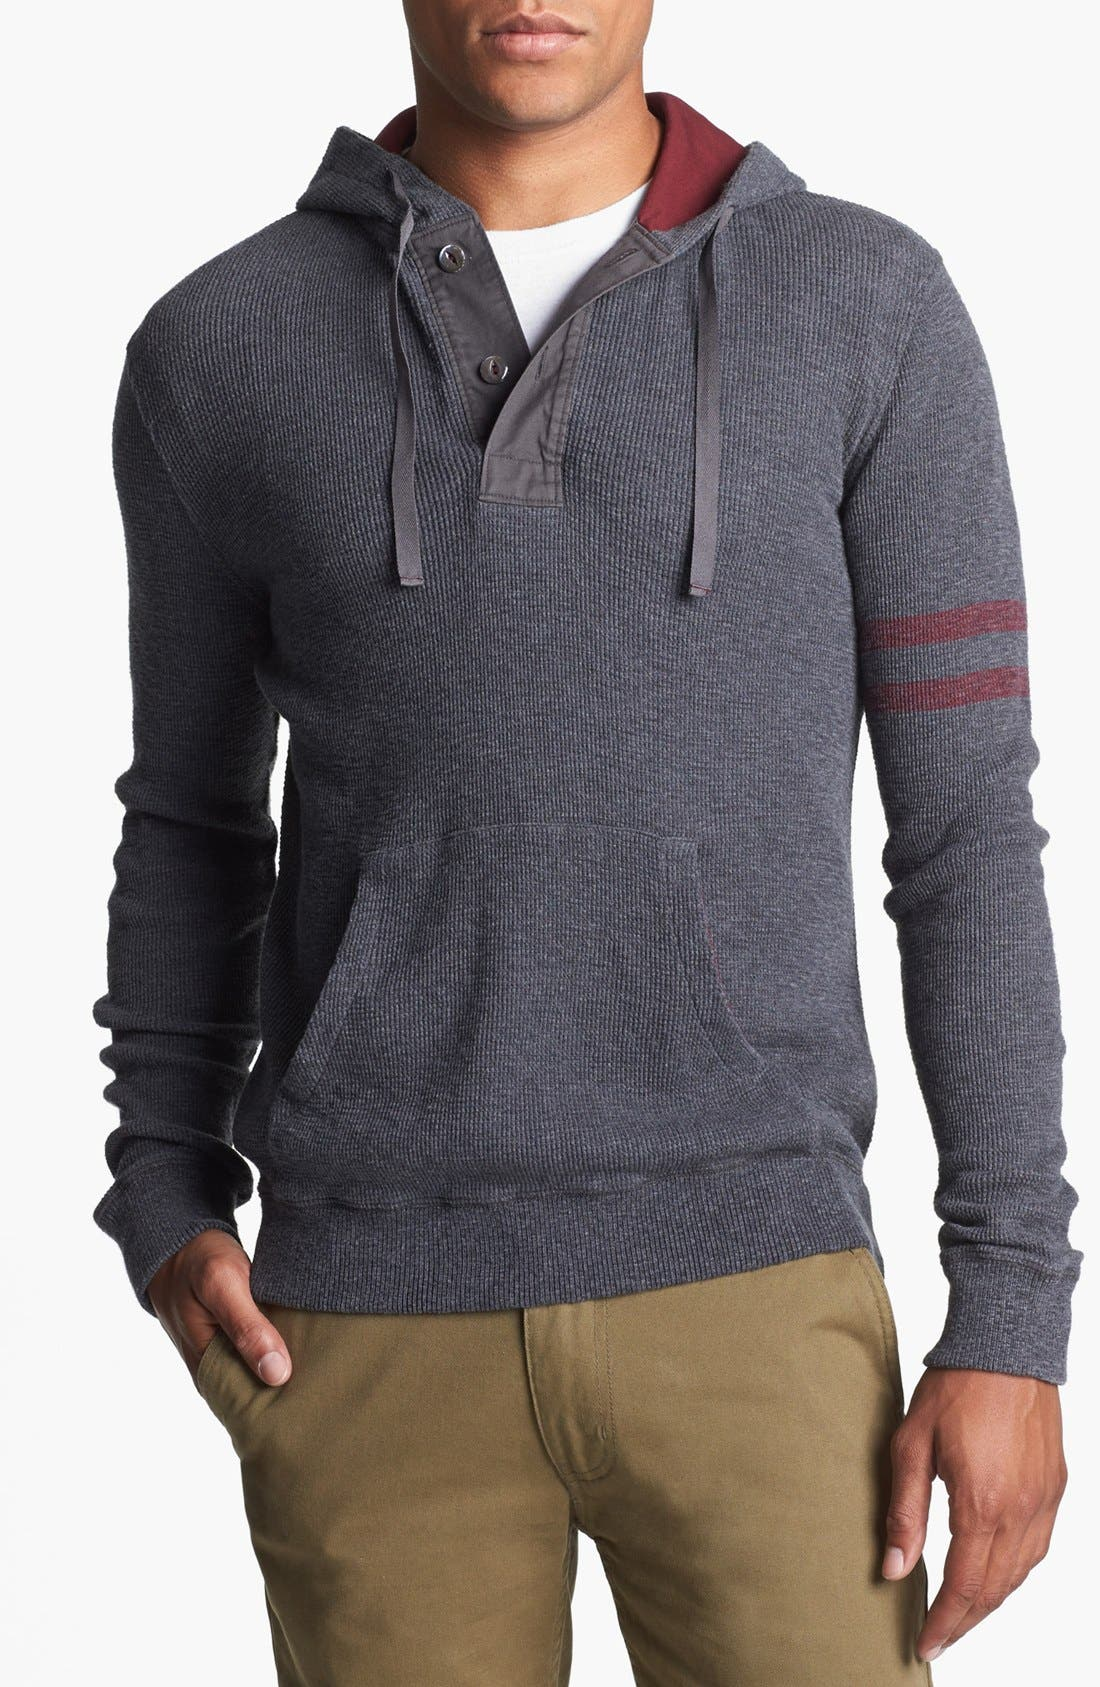 Alternate Image 1 Selected - J. Press York Street Hooded Thermal Henley Pullover